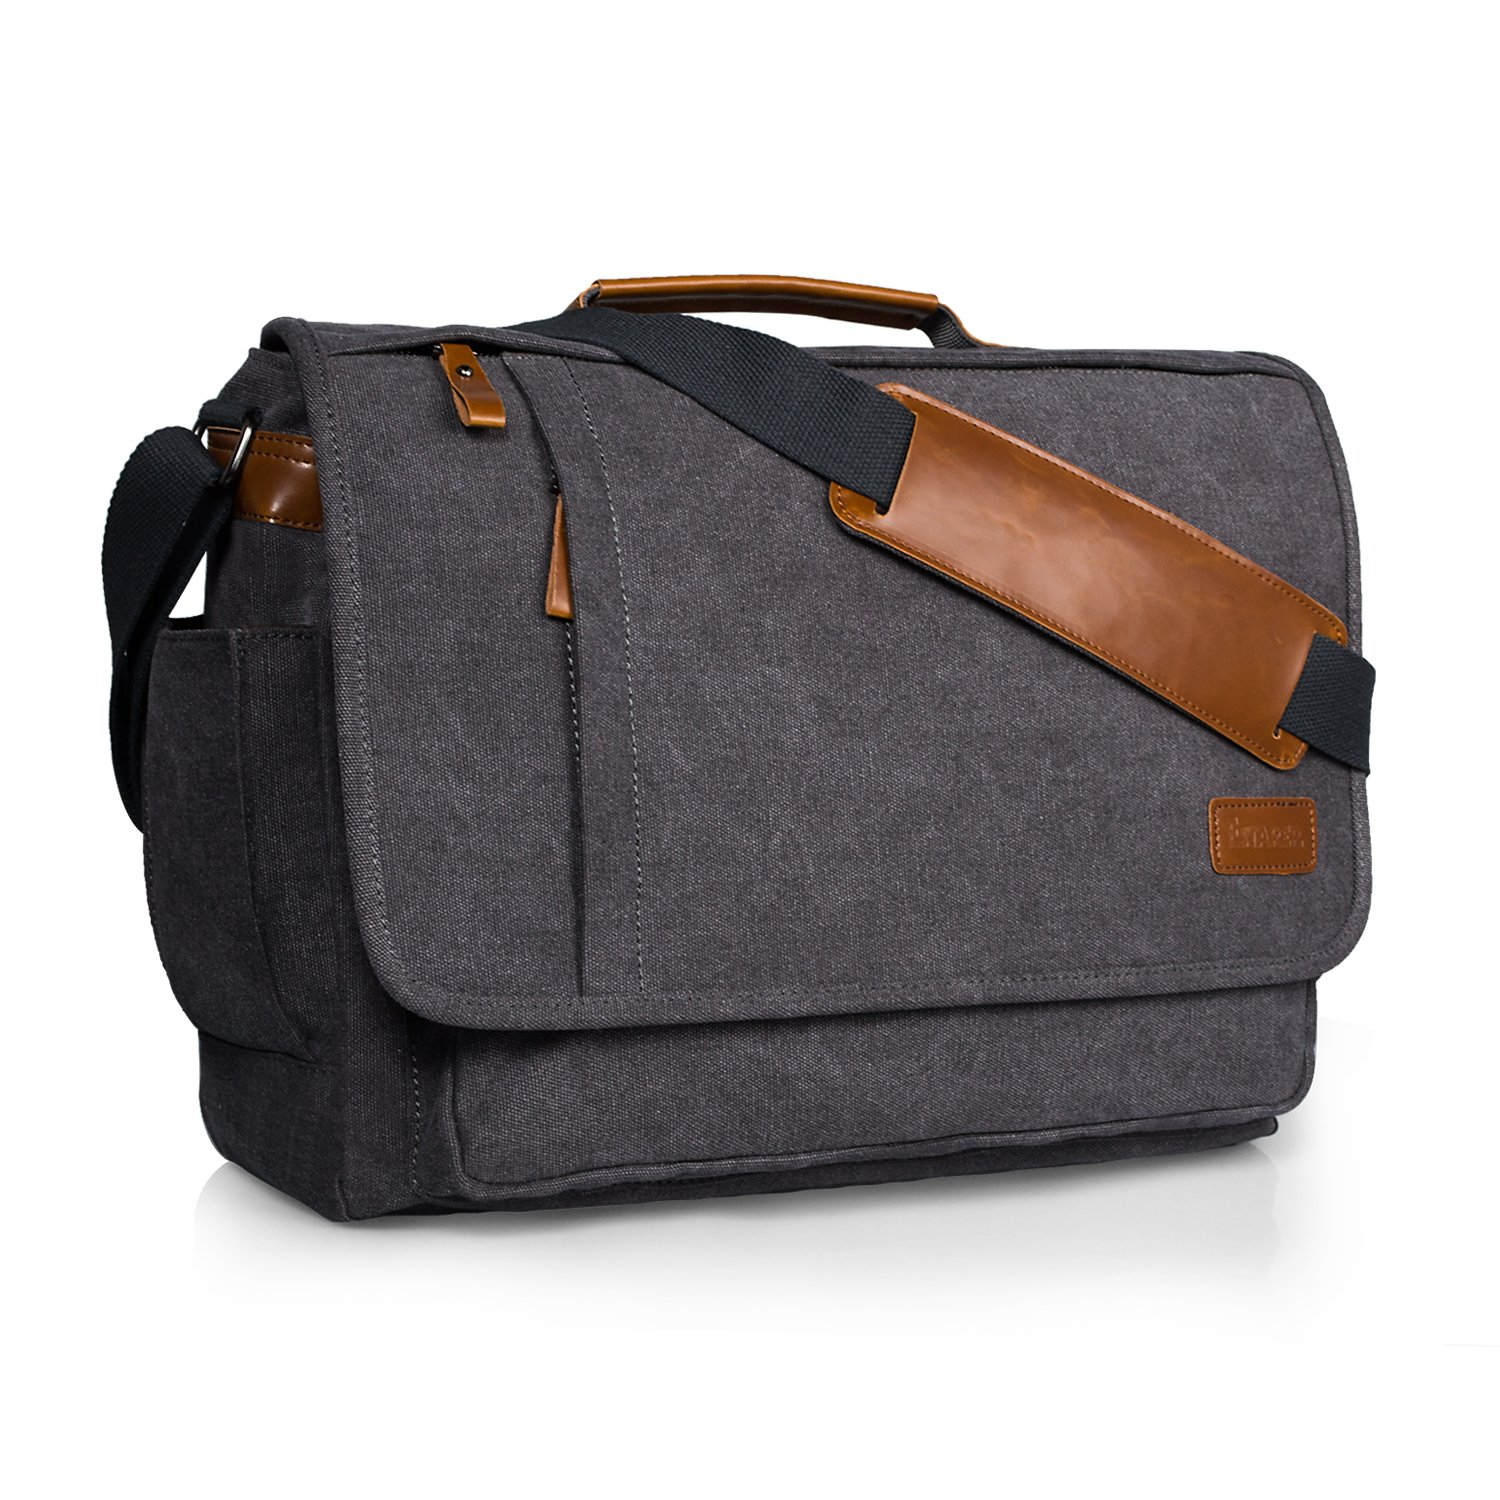 Estarer Laptop Messenger Bag 17-17.3 Inch Water-Resistance Canvas Shoulder Bag for Work College by Estarer (Image #1)